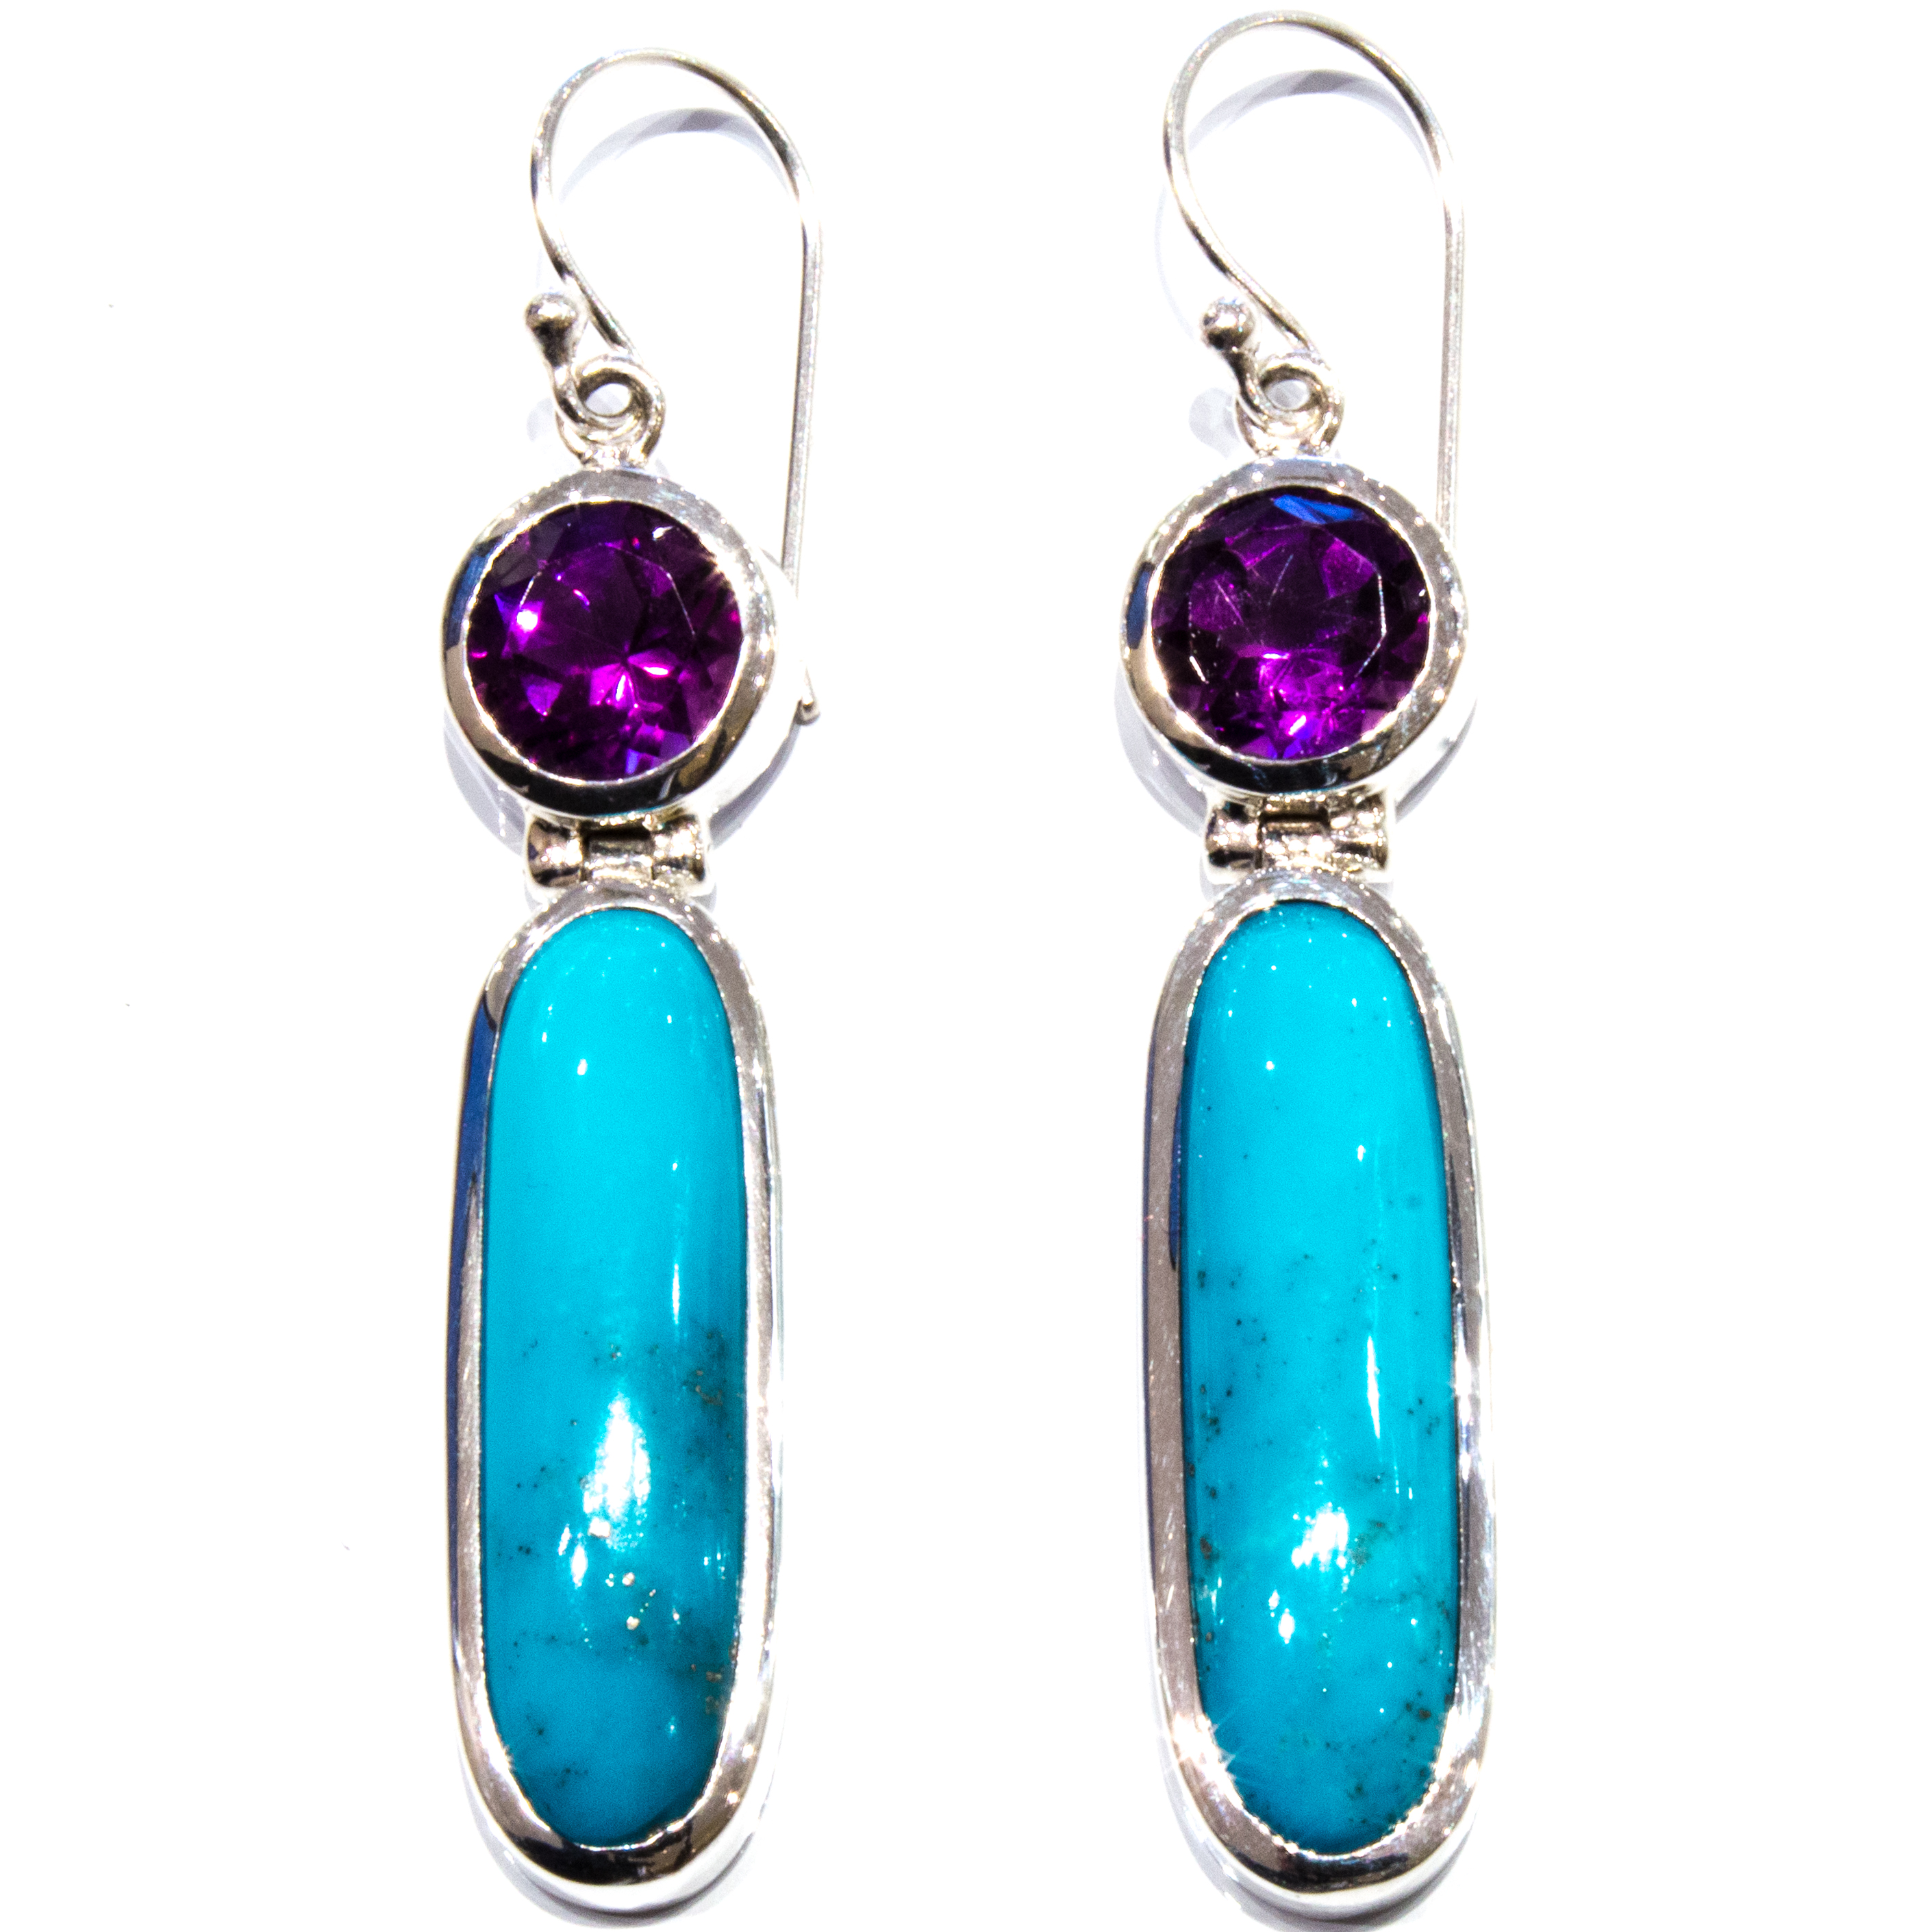 Amethyst and Turquoise Handmade Earrings